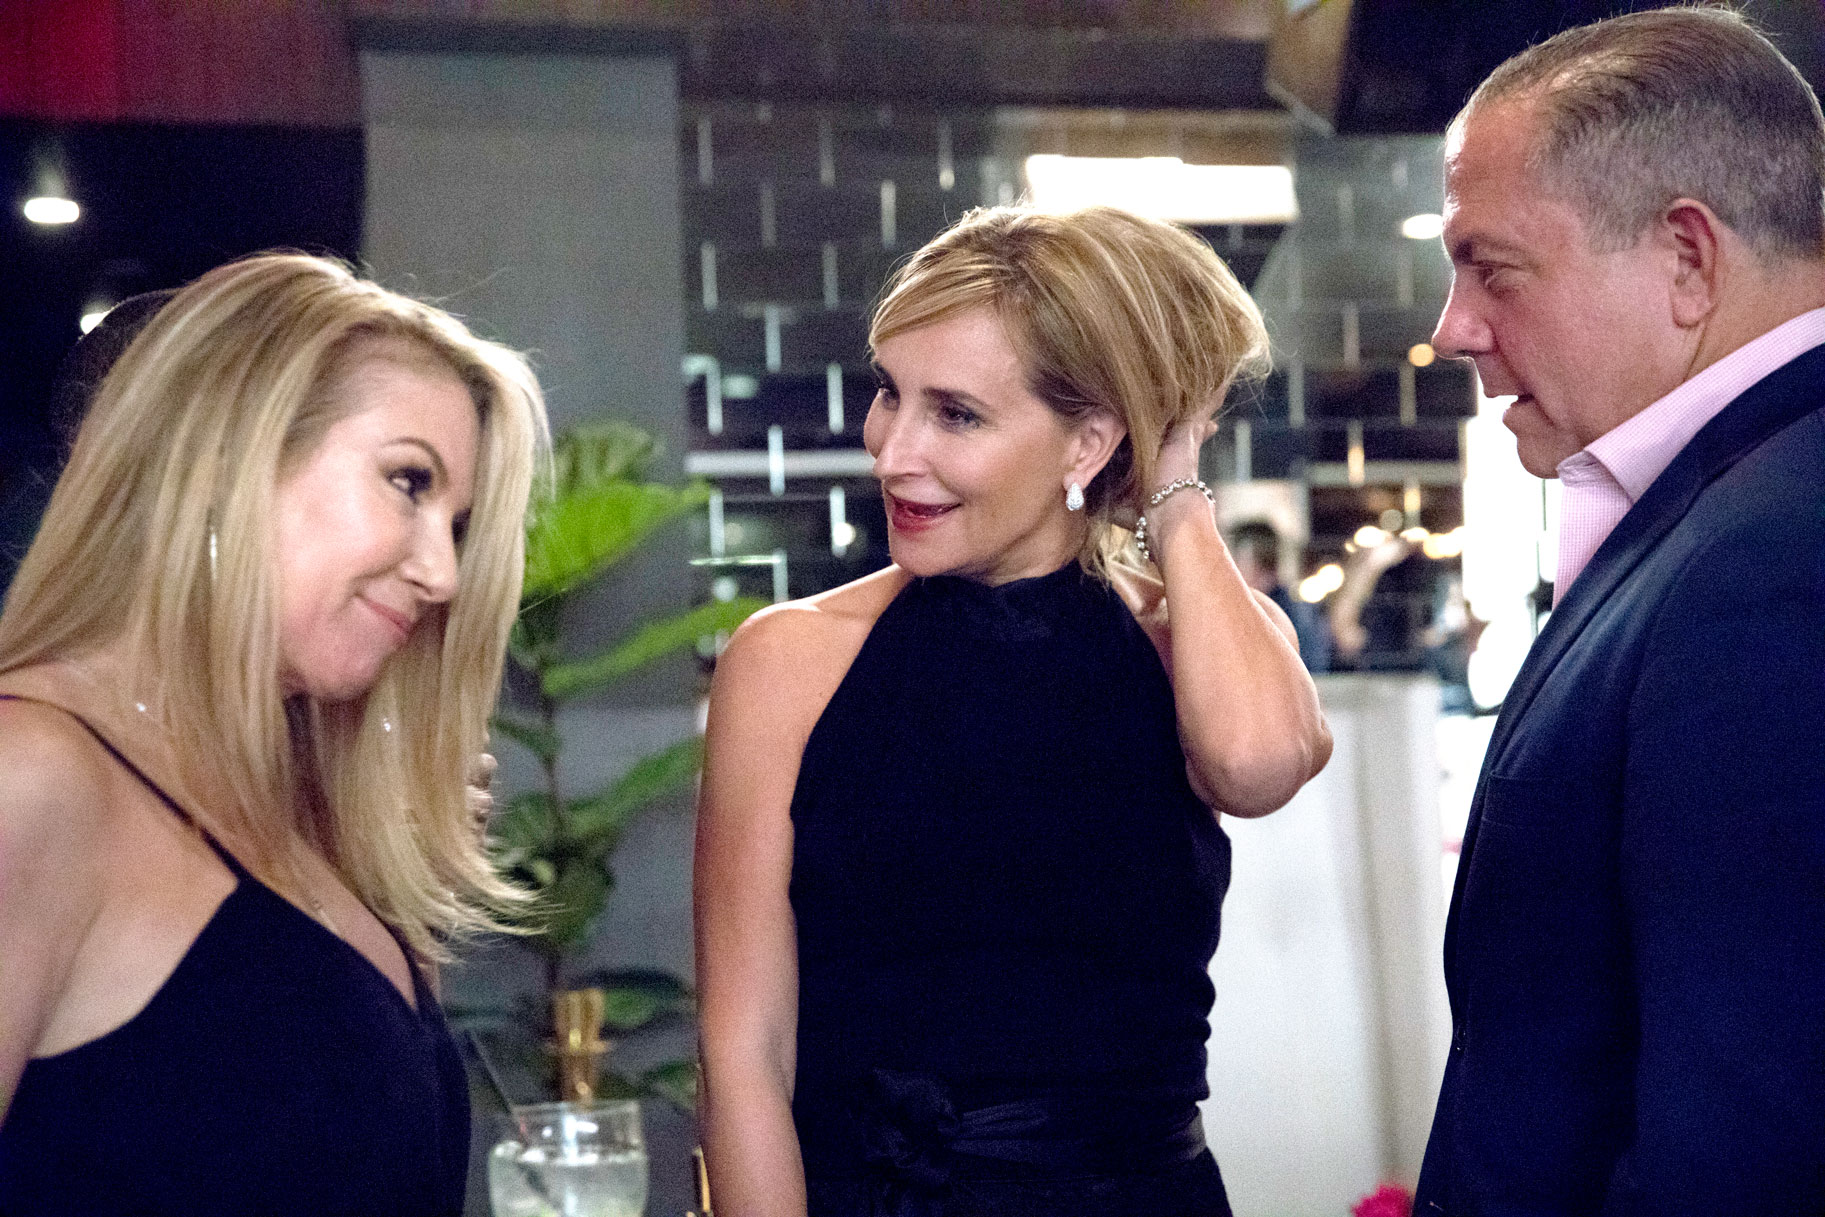 Ramona Singer, Sonja Morgan, Harry Dubin